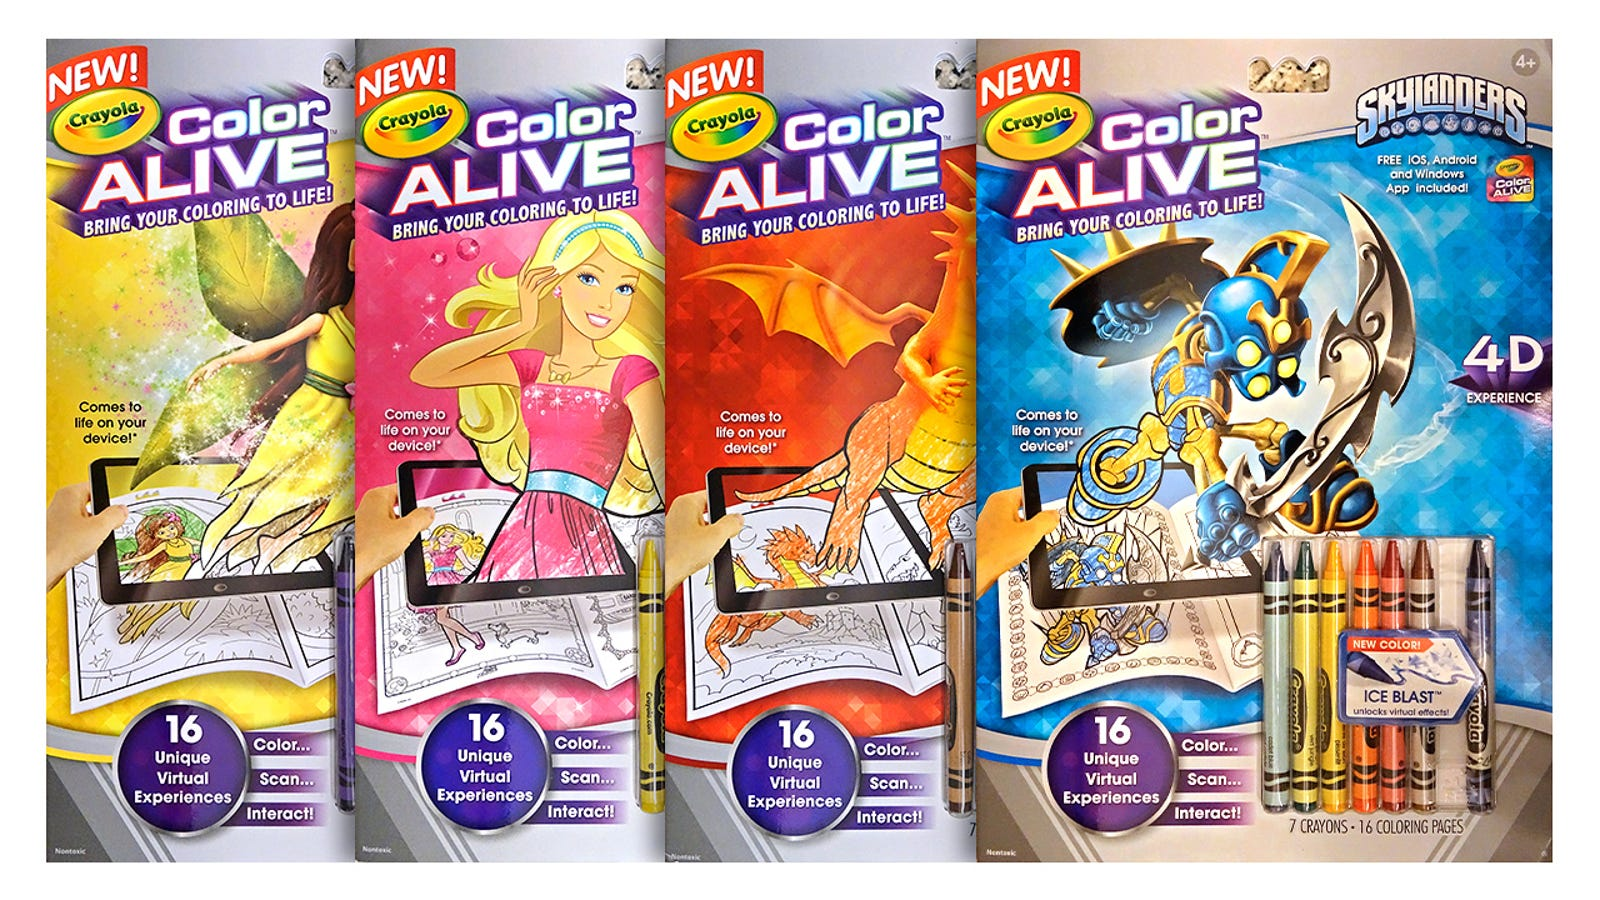 Crayola 39 s New Coloring Books Bring